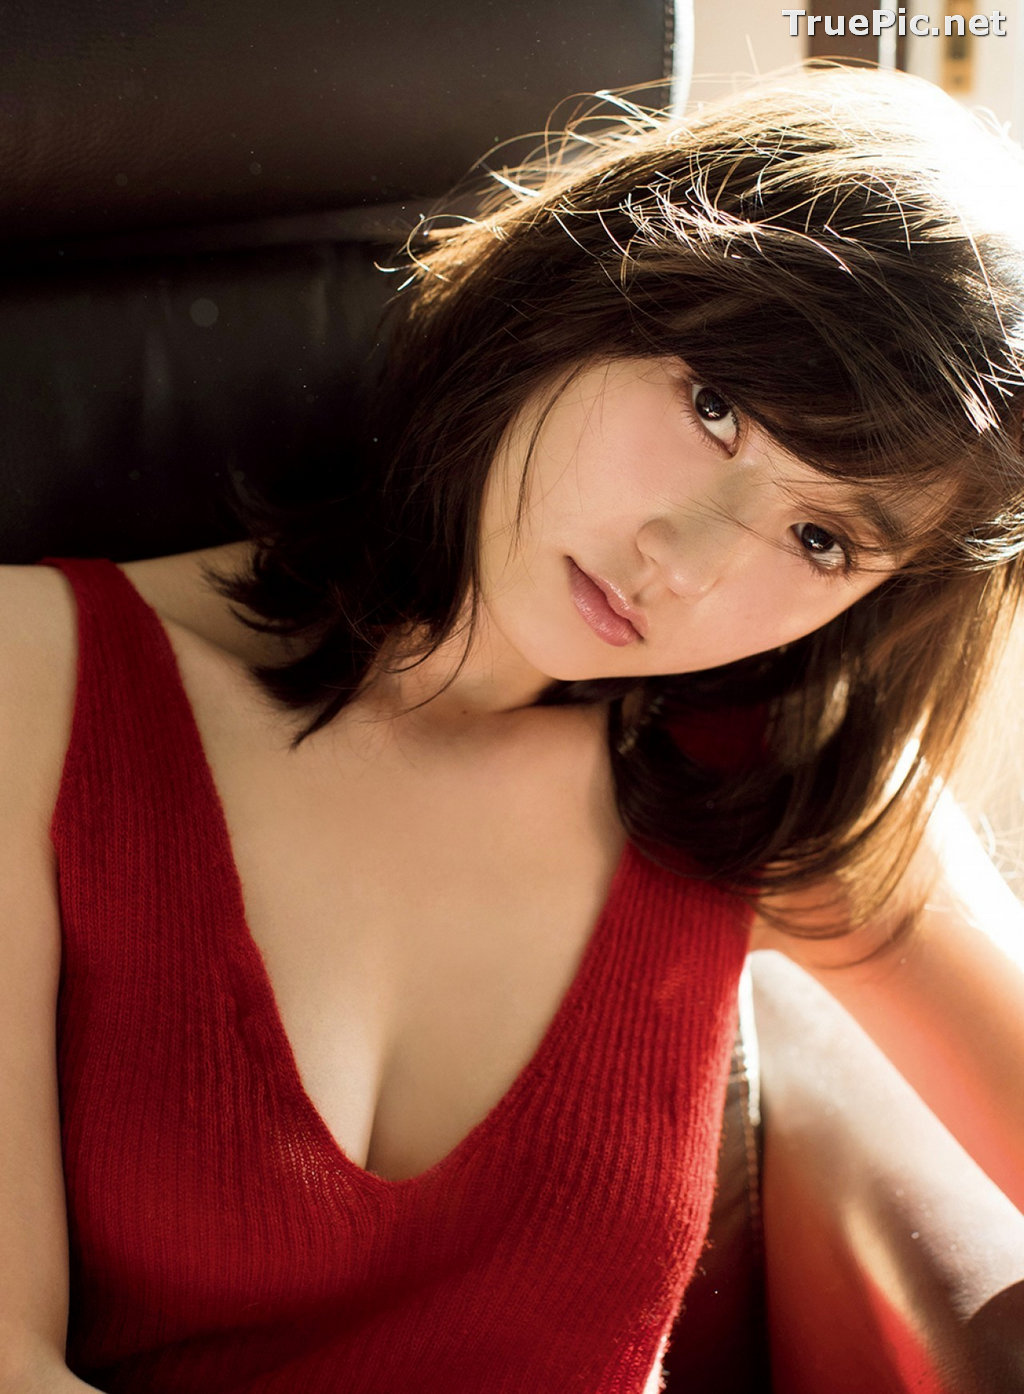 Image Japanese Model and Actress - Yuuna Suzuki - Sexy Picture Collection 2020 - TruePic.net - Picture-10